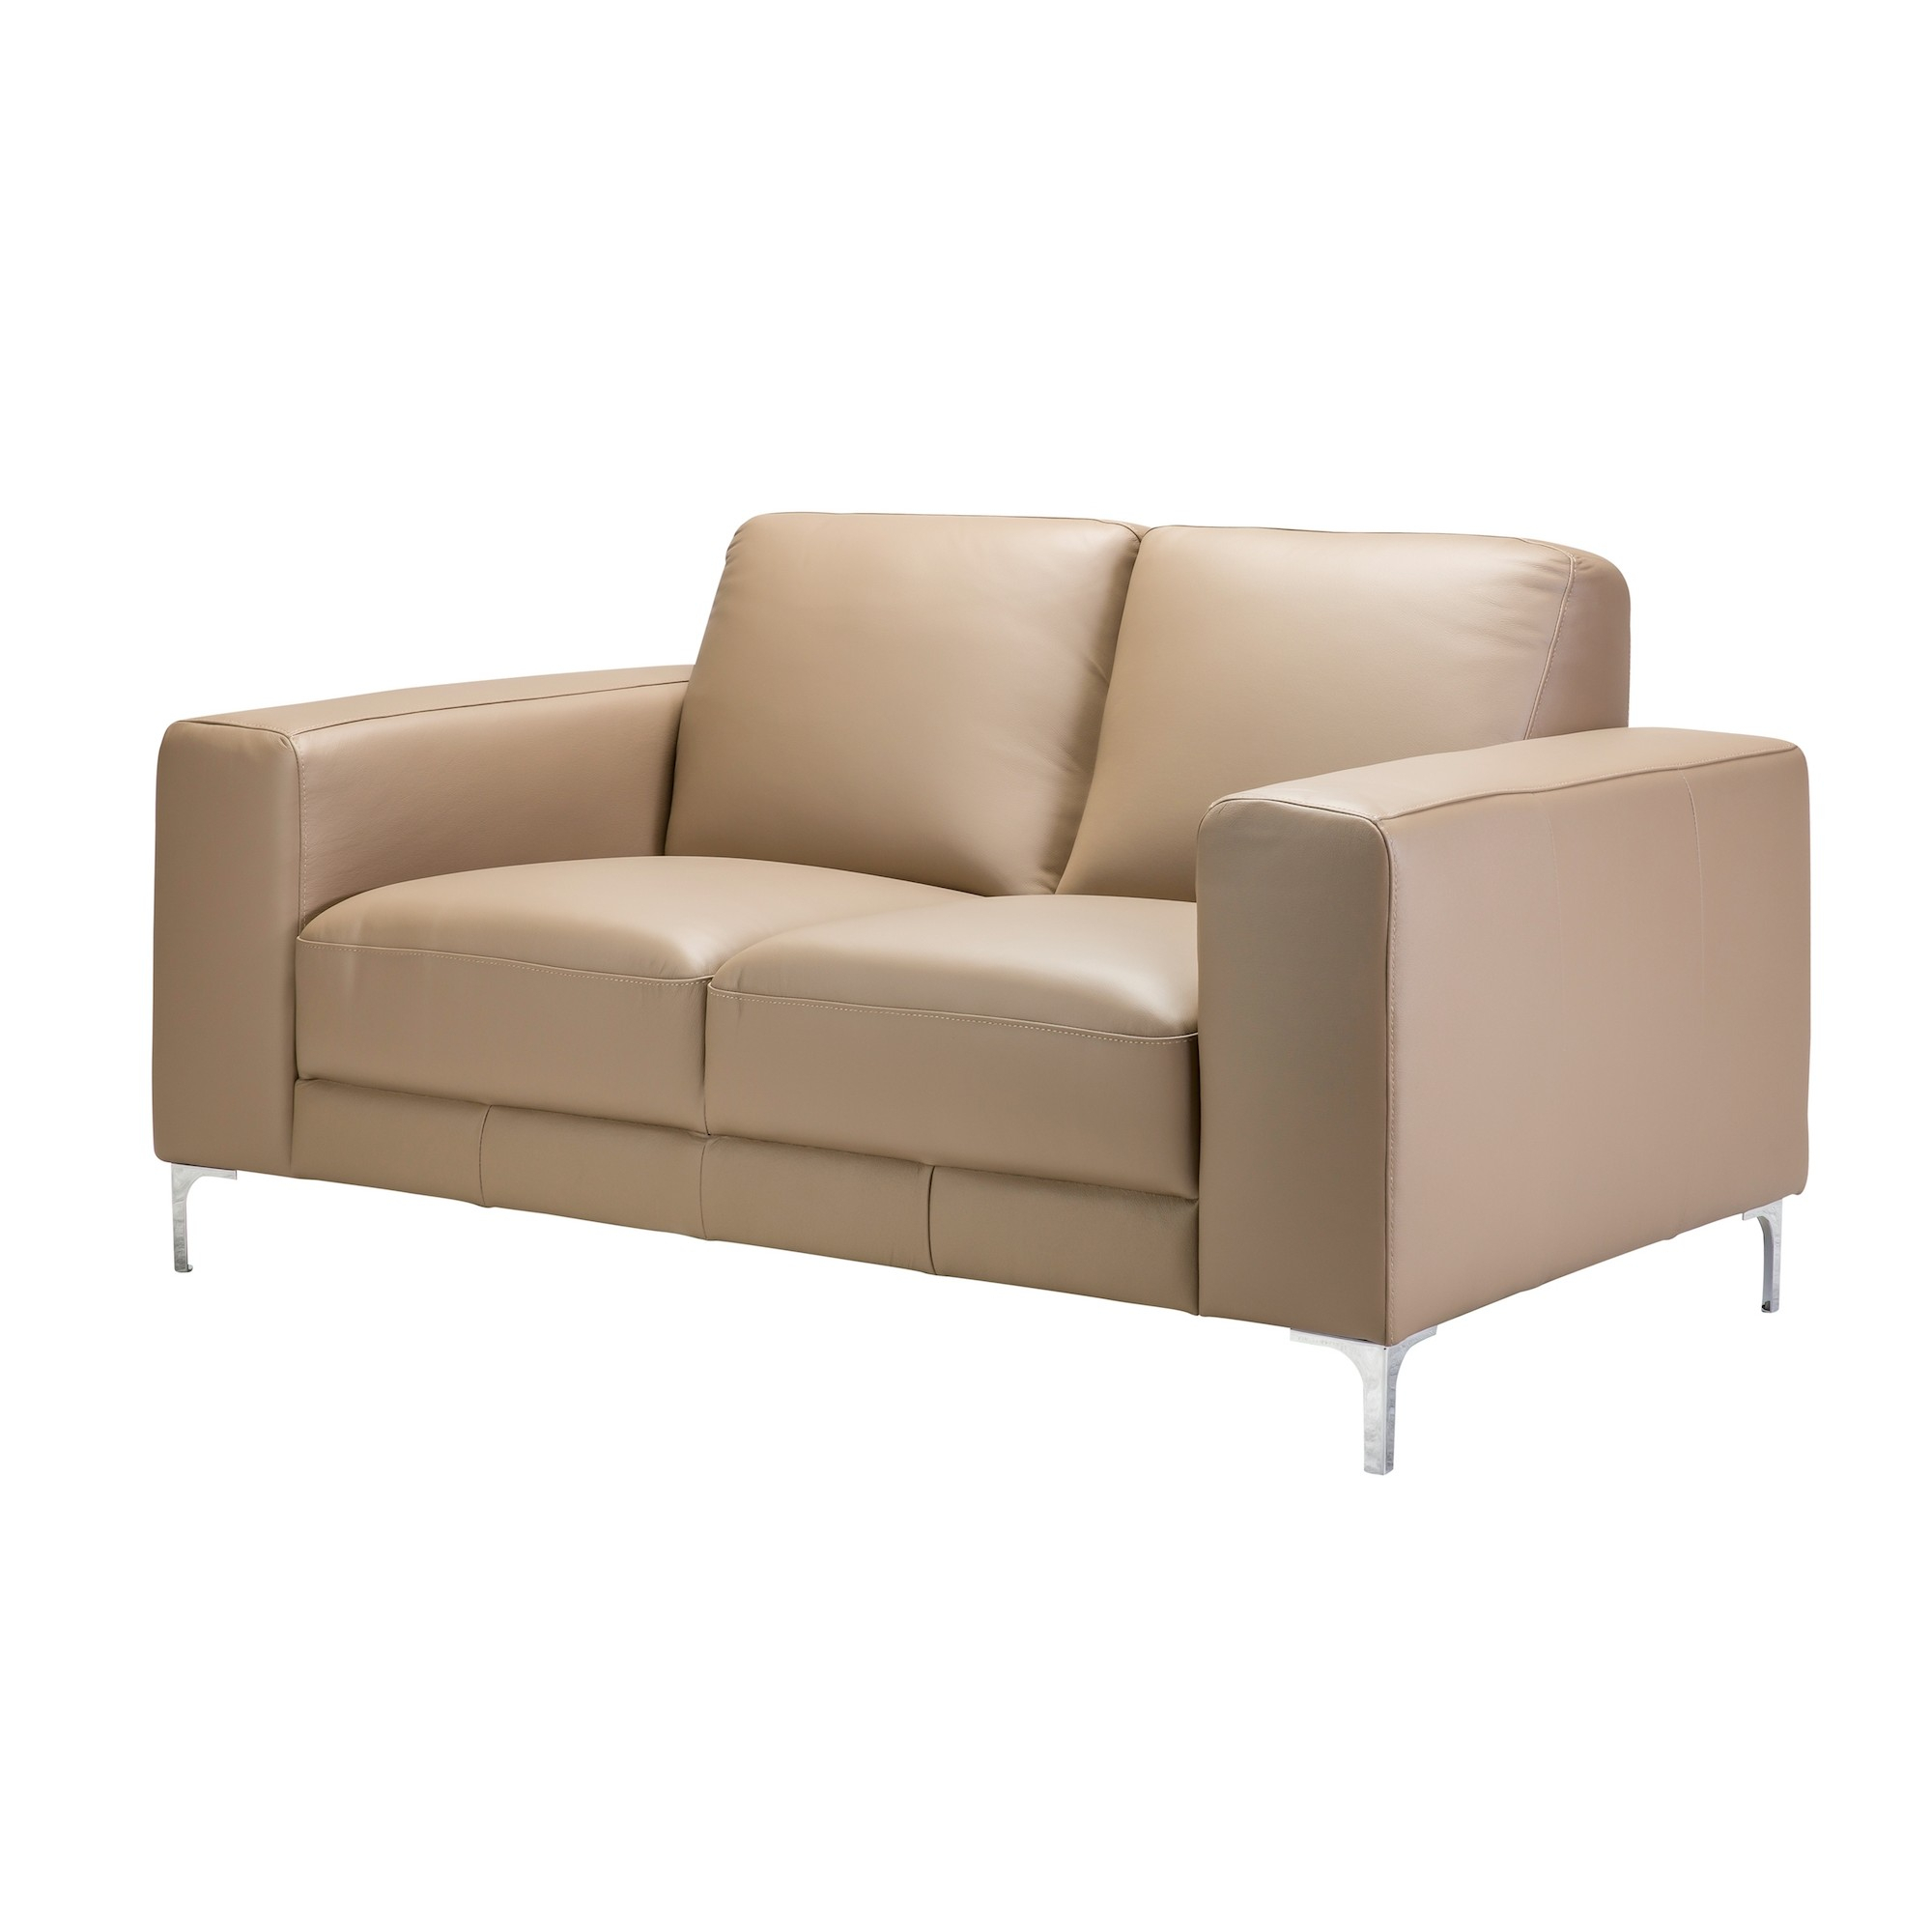 Kiara 2 Seater Love Seat Leather regarding Kiara Sofa Chairs